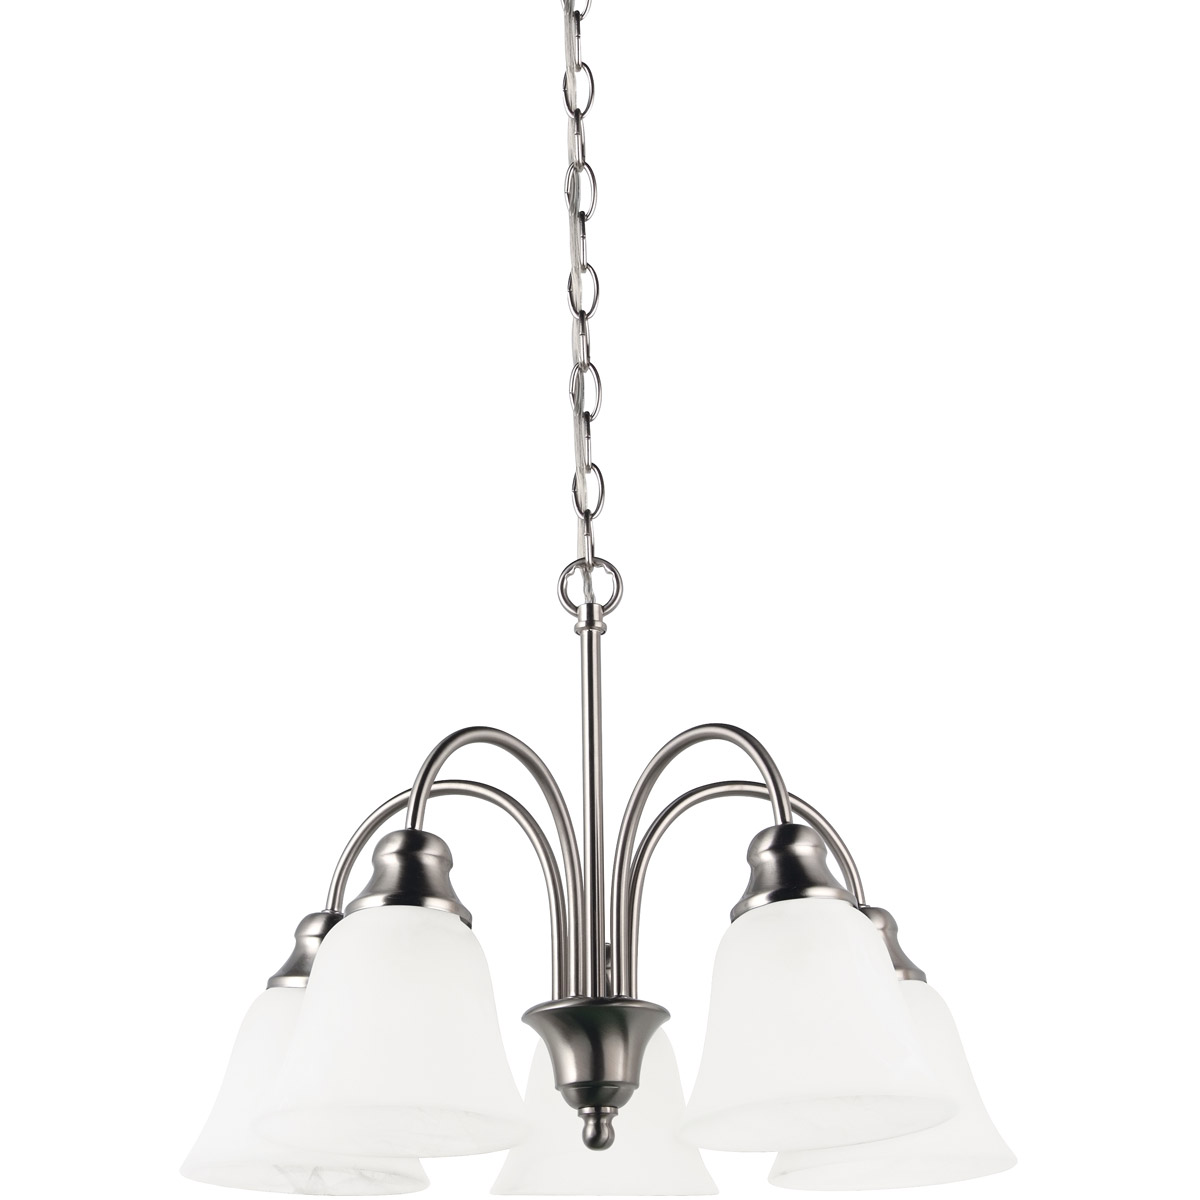 Sea Gull Lighting Windgate 5 Light Chandelier in Brushed Nickel 35950-962 photo